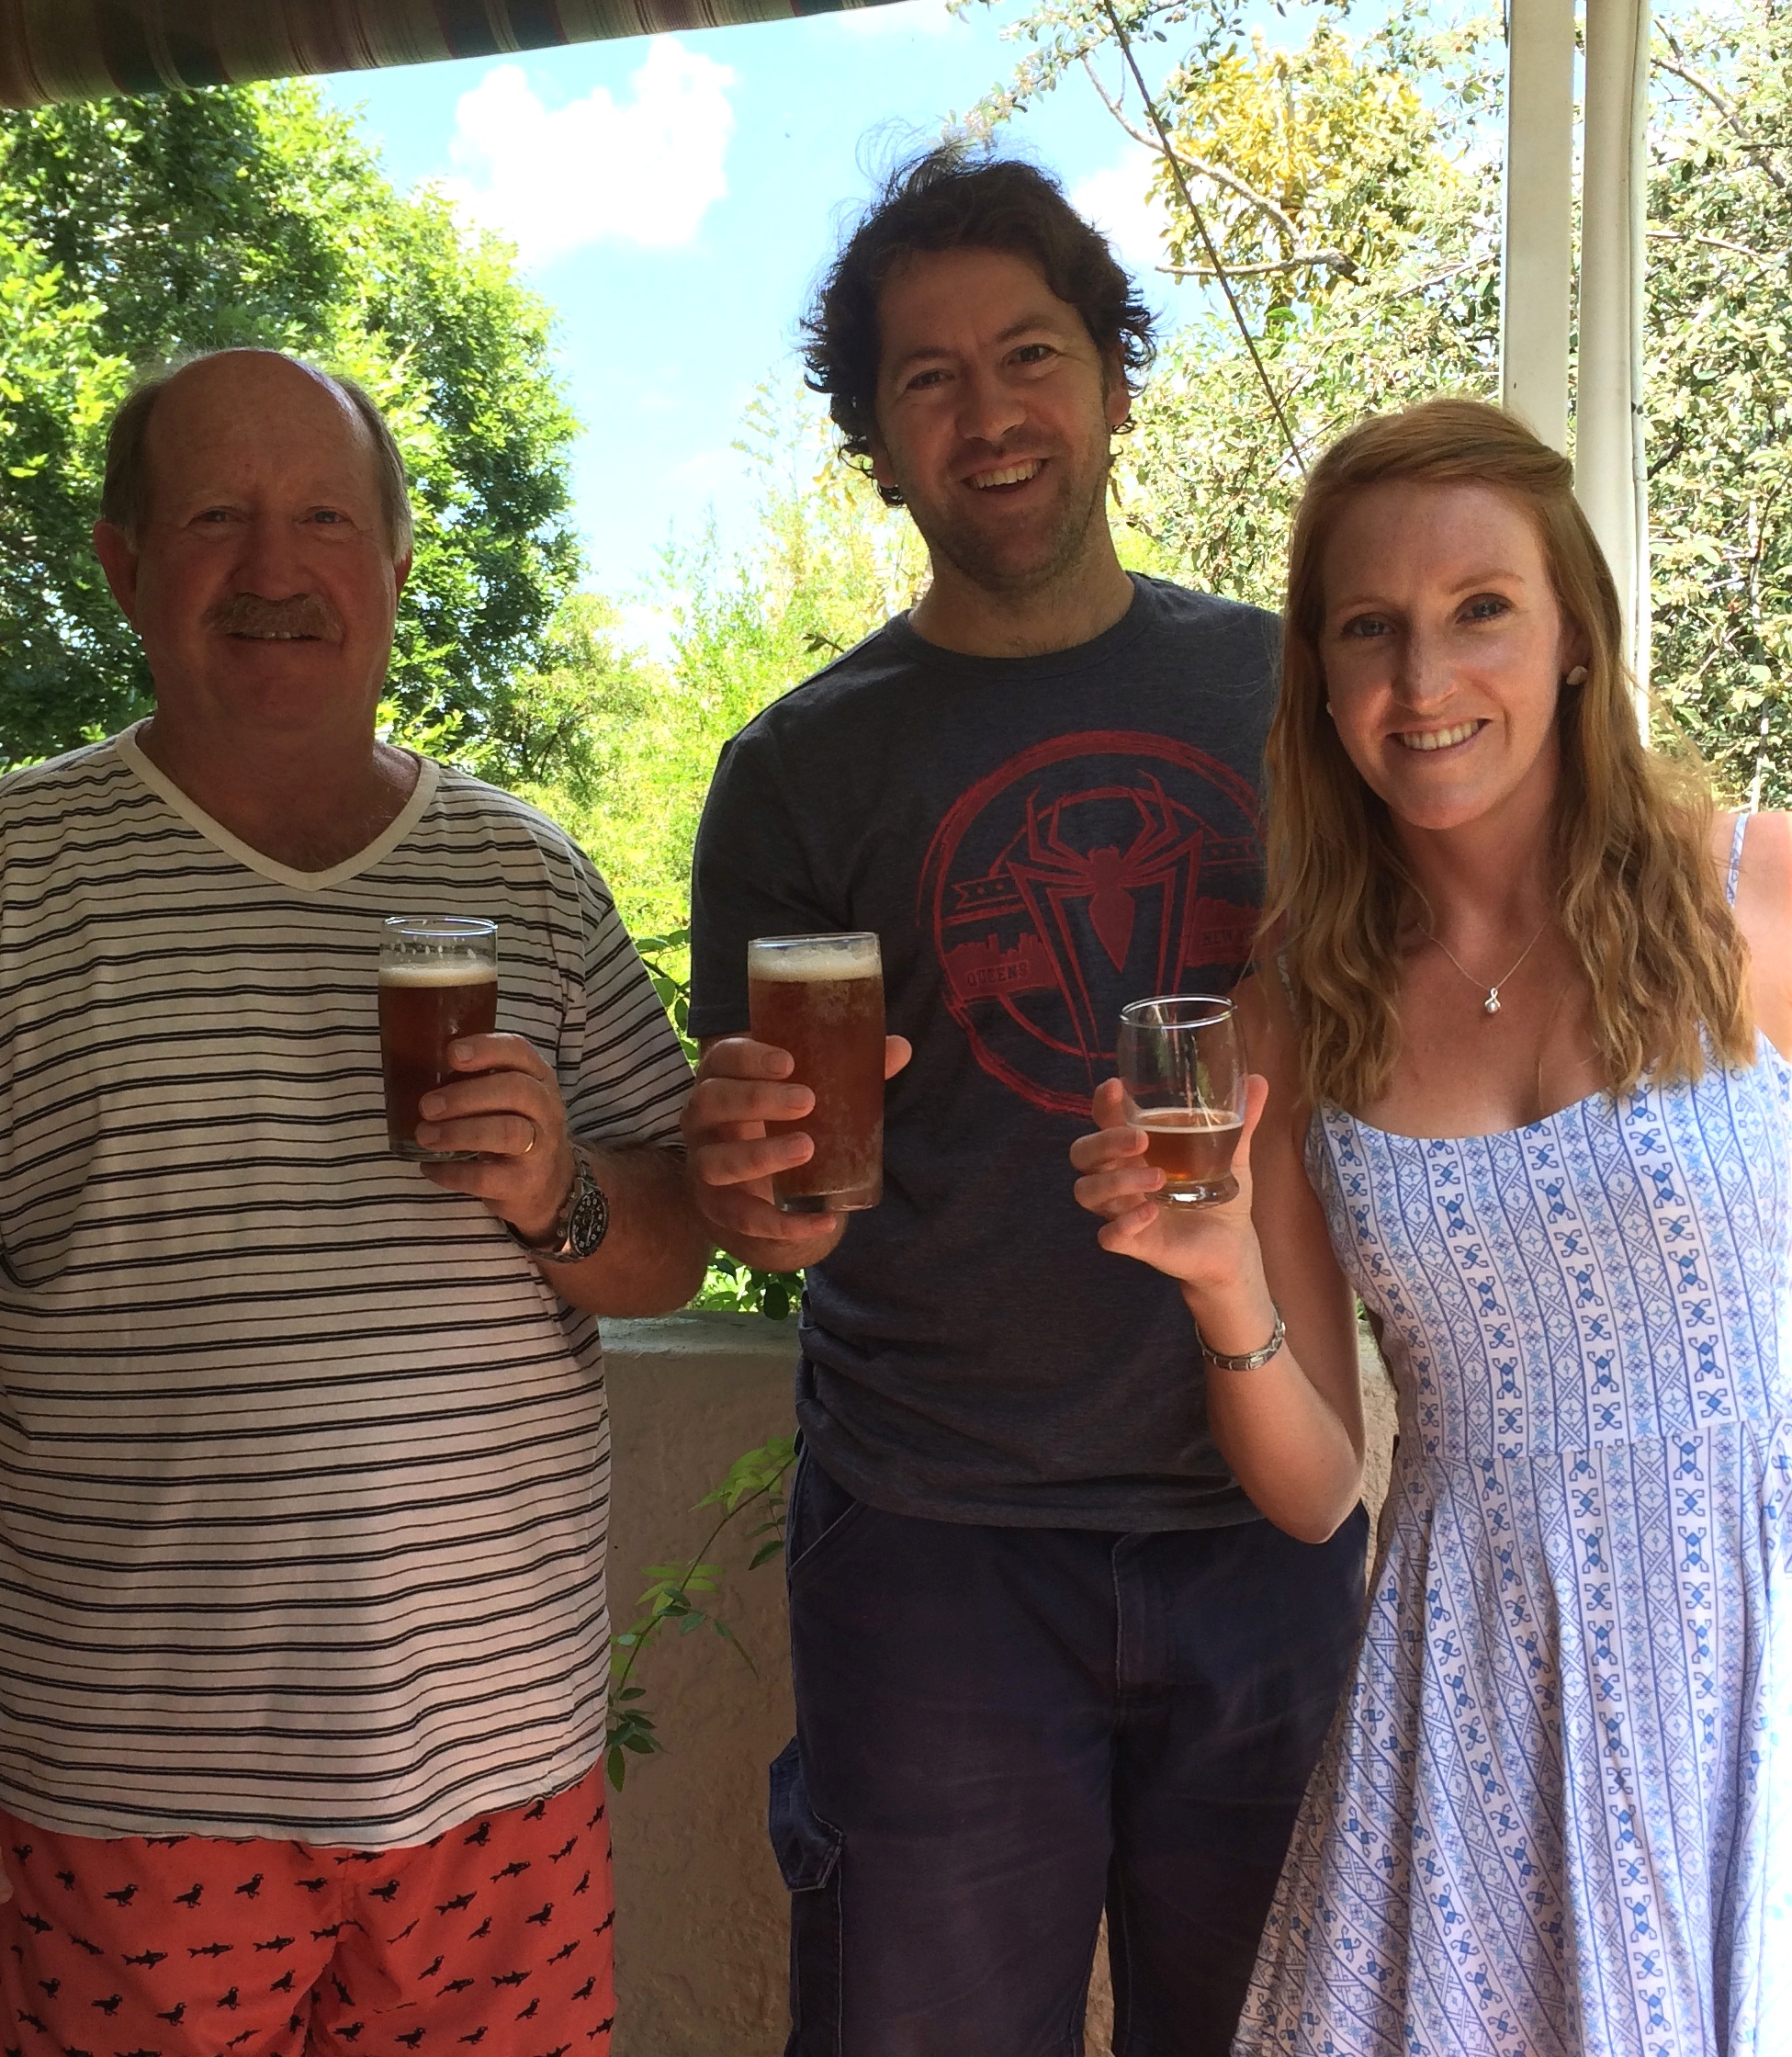 Frigid Isles Brewing team L-R: Mac du Toit, Nico de Bruyn and Kate du Toit.